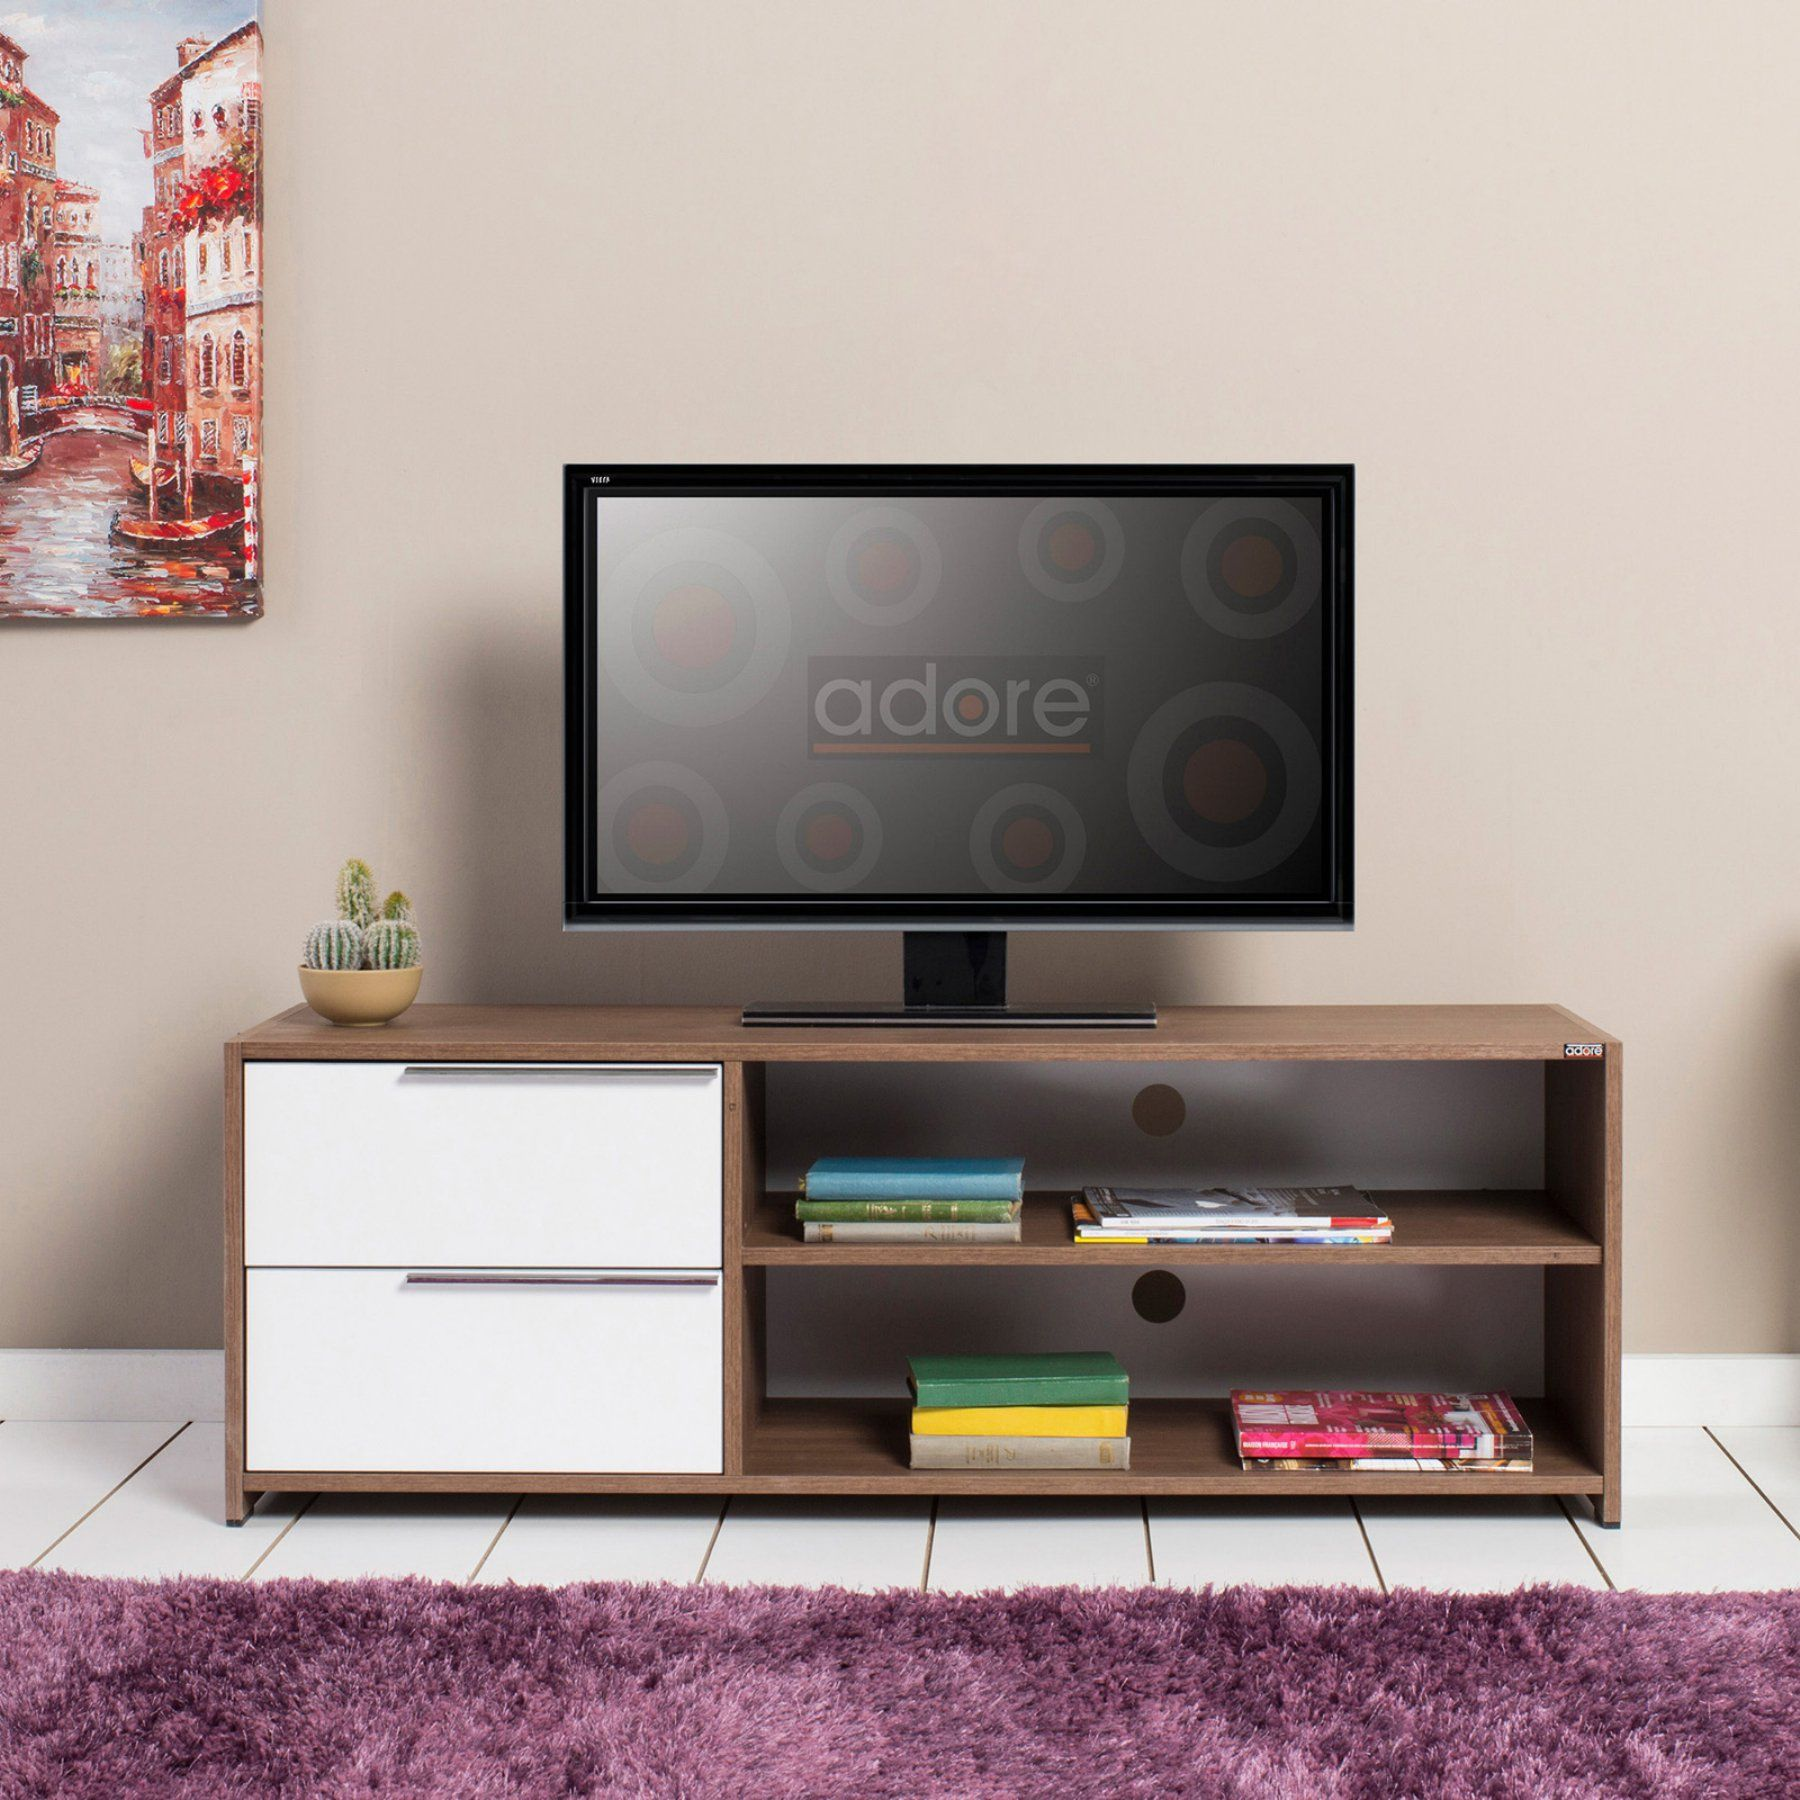 Pin By Symonette Fanjanarivo On Meubles In 2020 Tv Cabinets House Plans With Pictures Tv